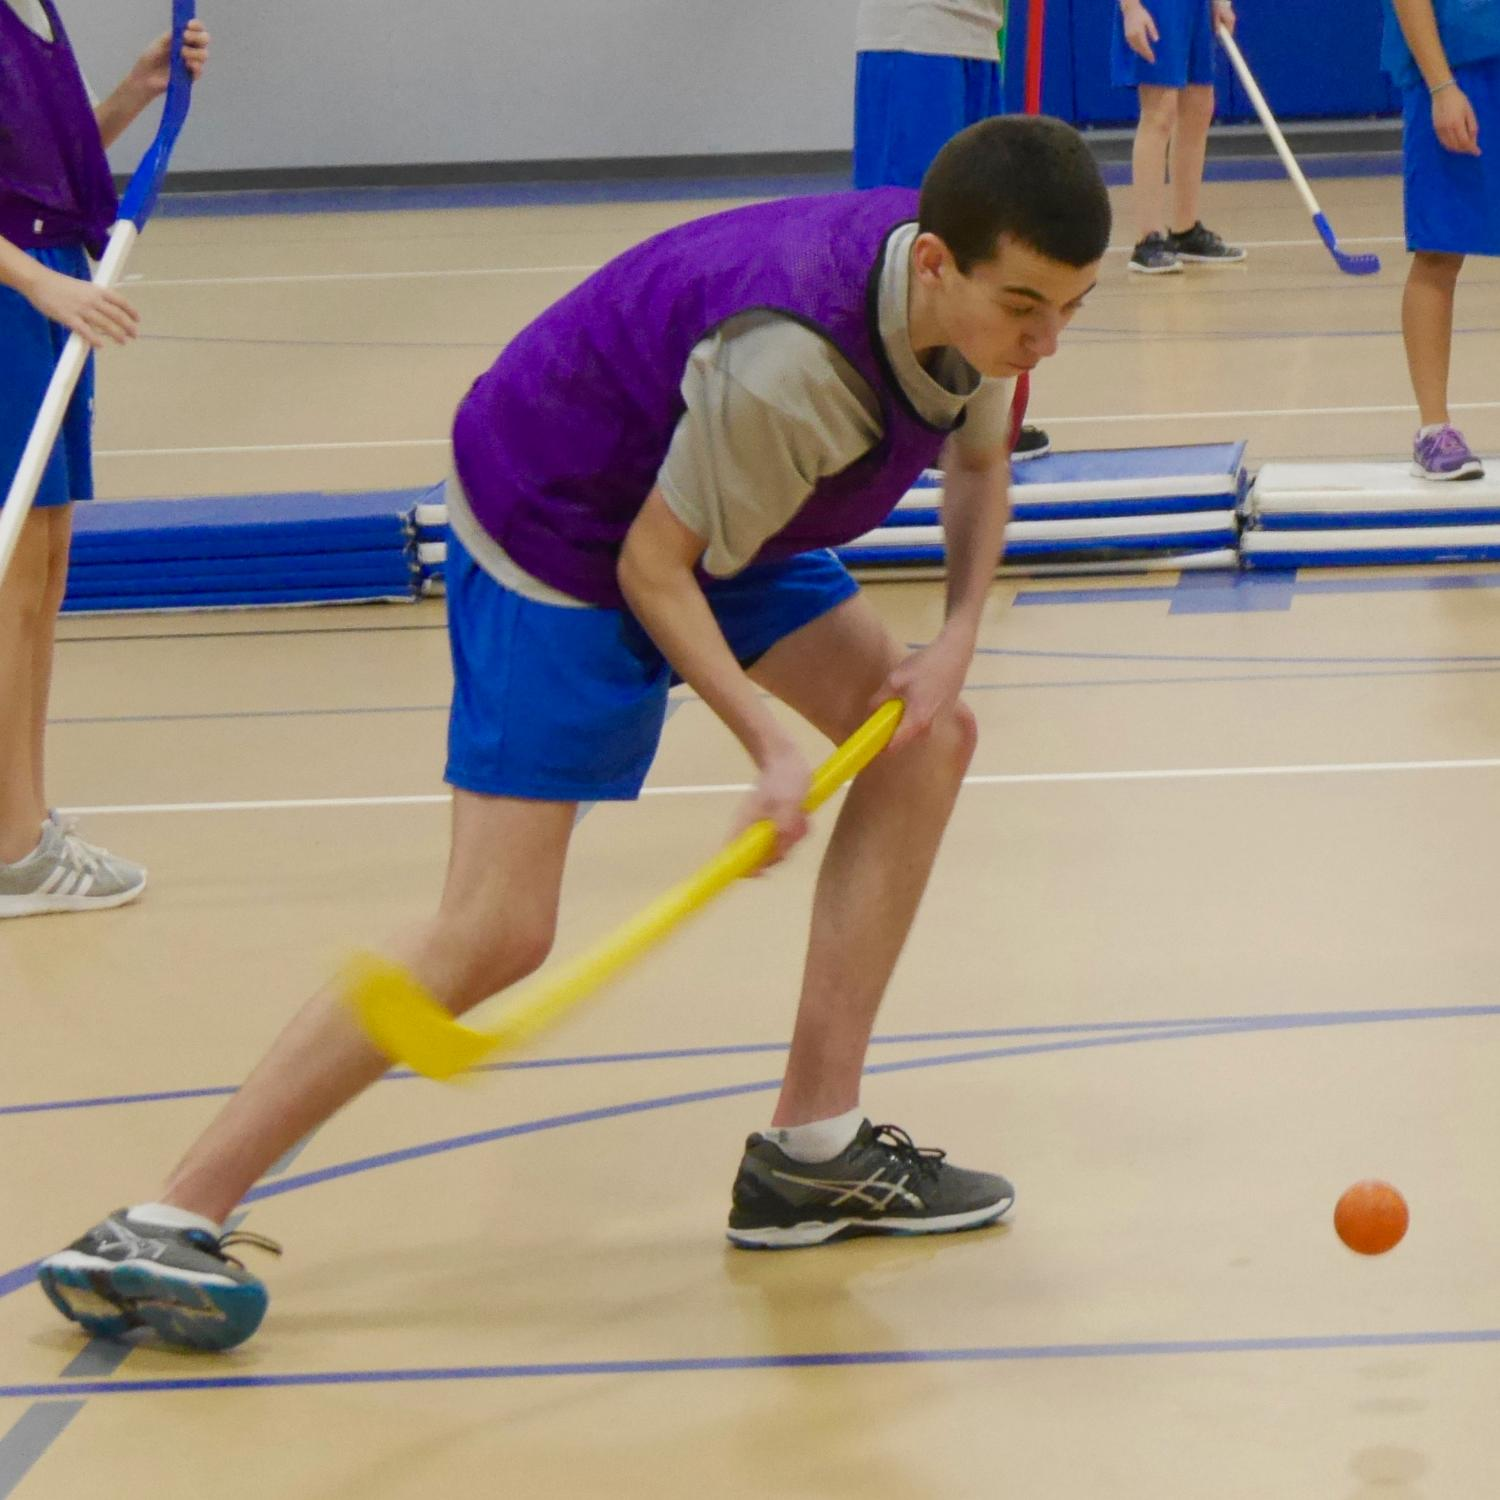 Boy playing floor hockey